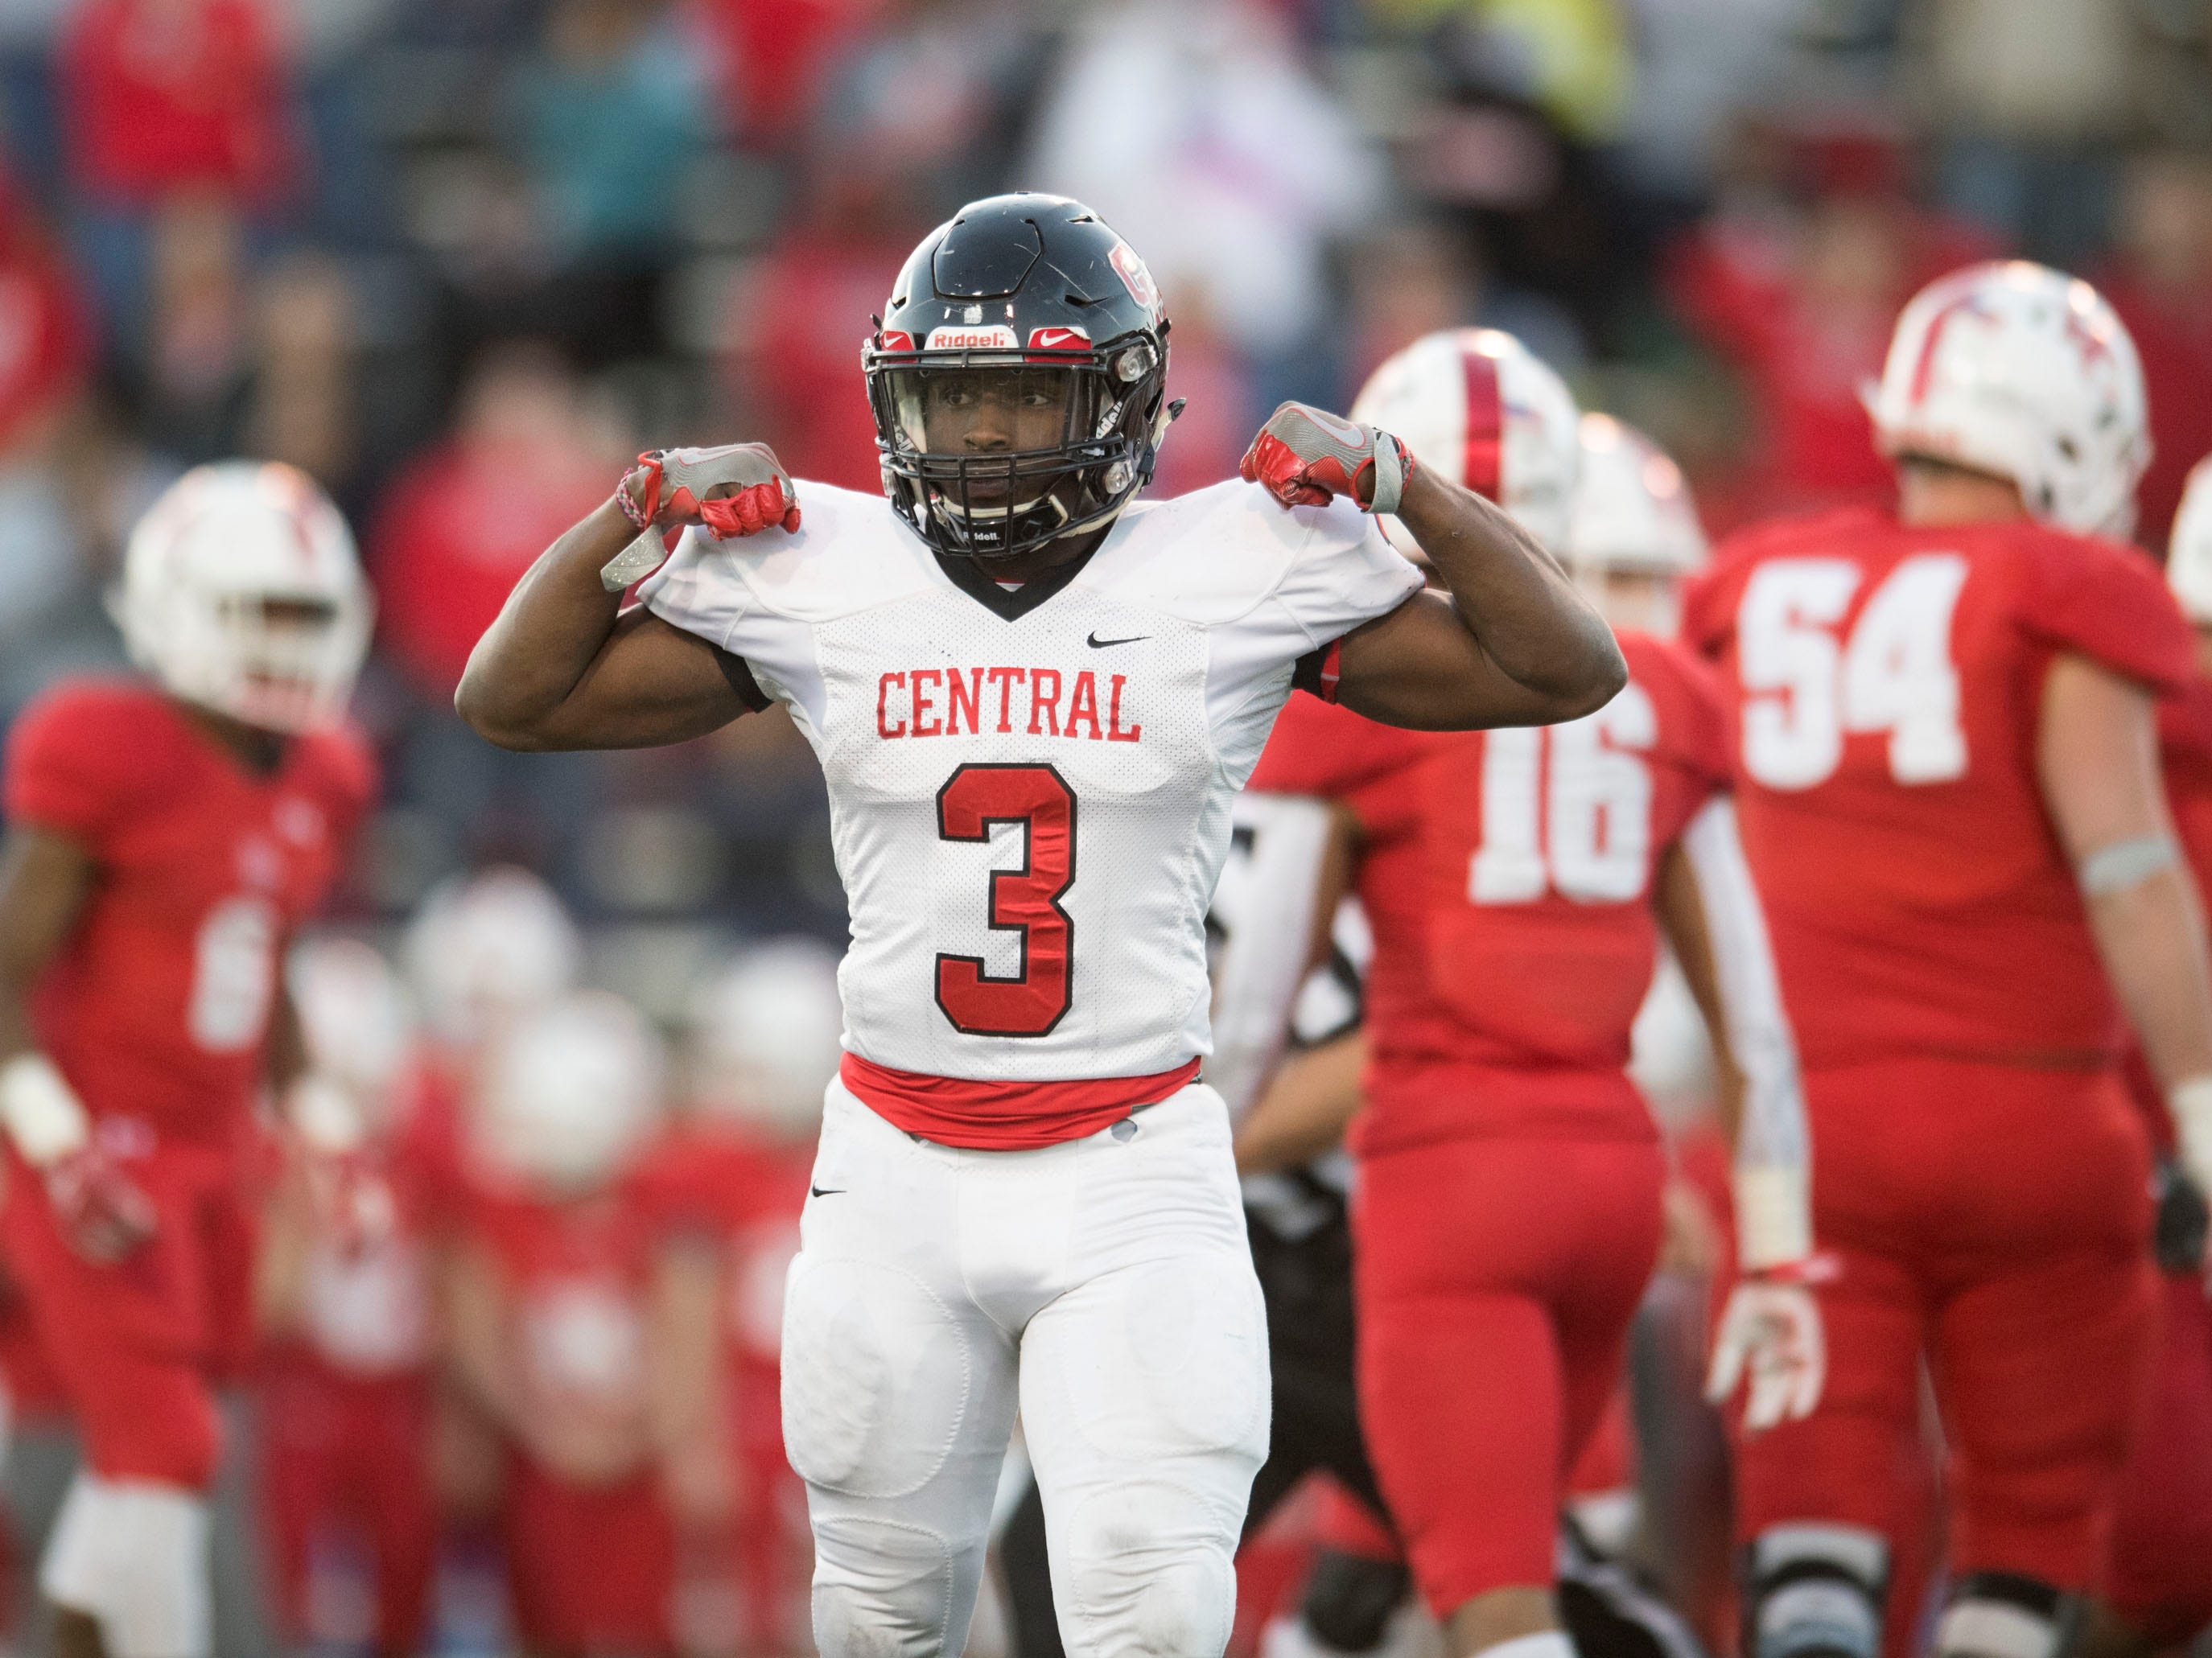 Knoxville Central's Xavier Washington (3) celebrates as the team secures a 14-9 win over Henry County in the Class 5A BlueCross Bowl at Tucker Stadium on Sunday, December 2, 2018.